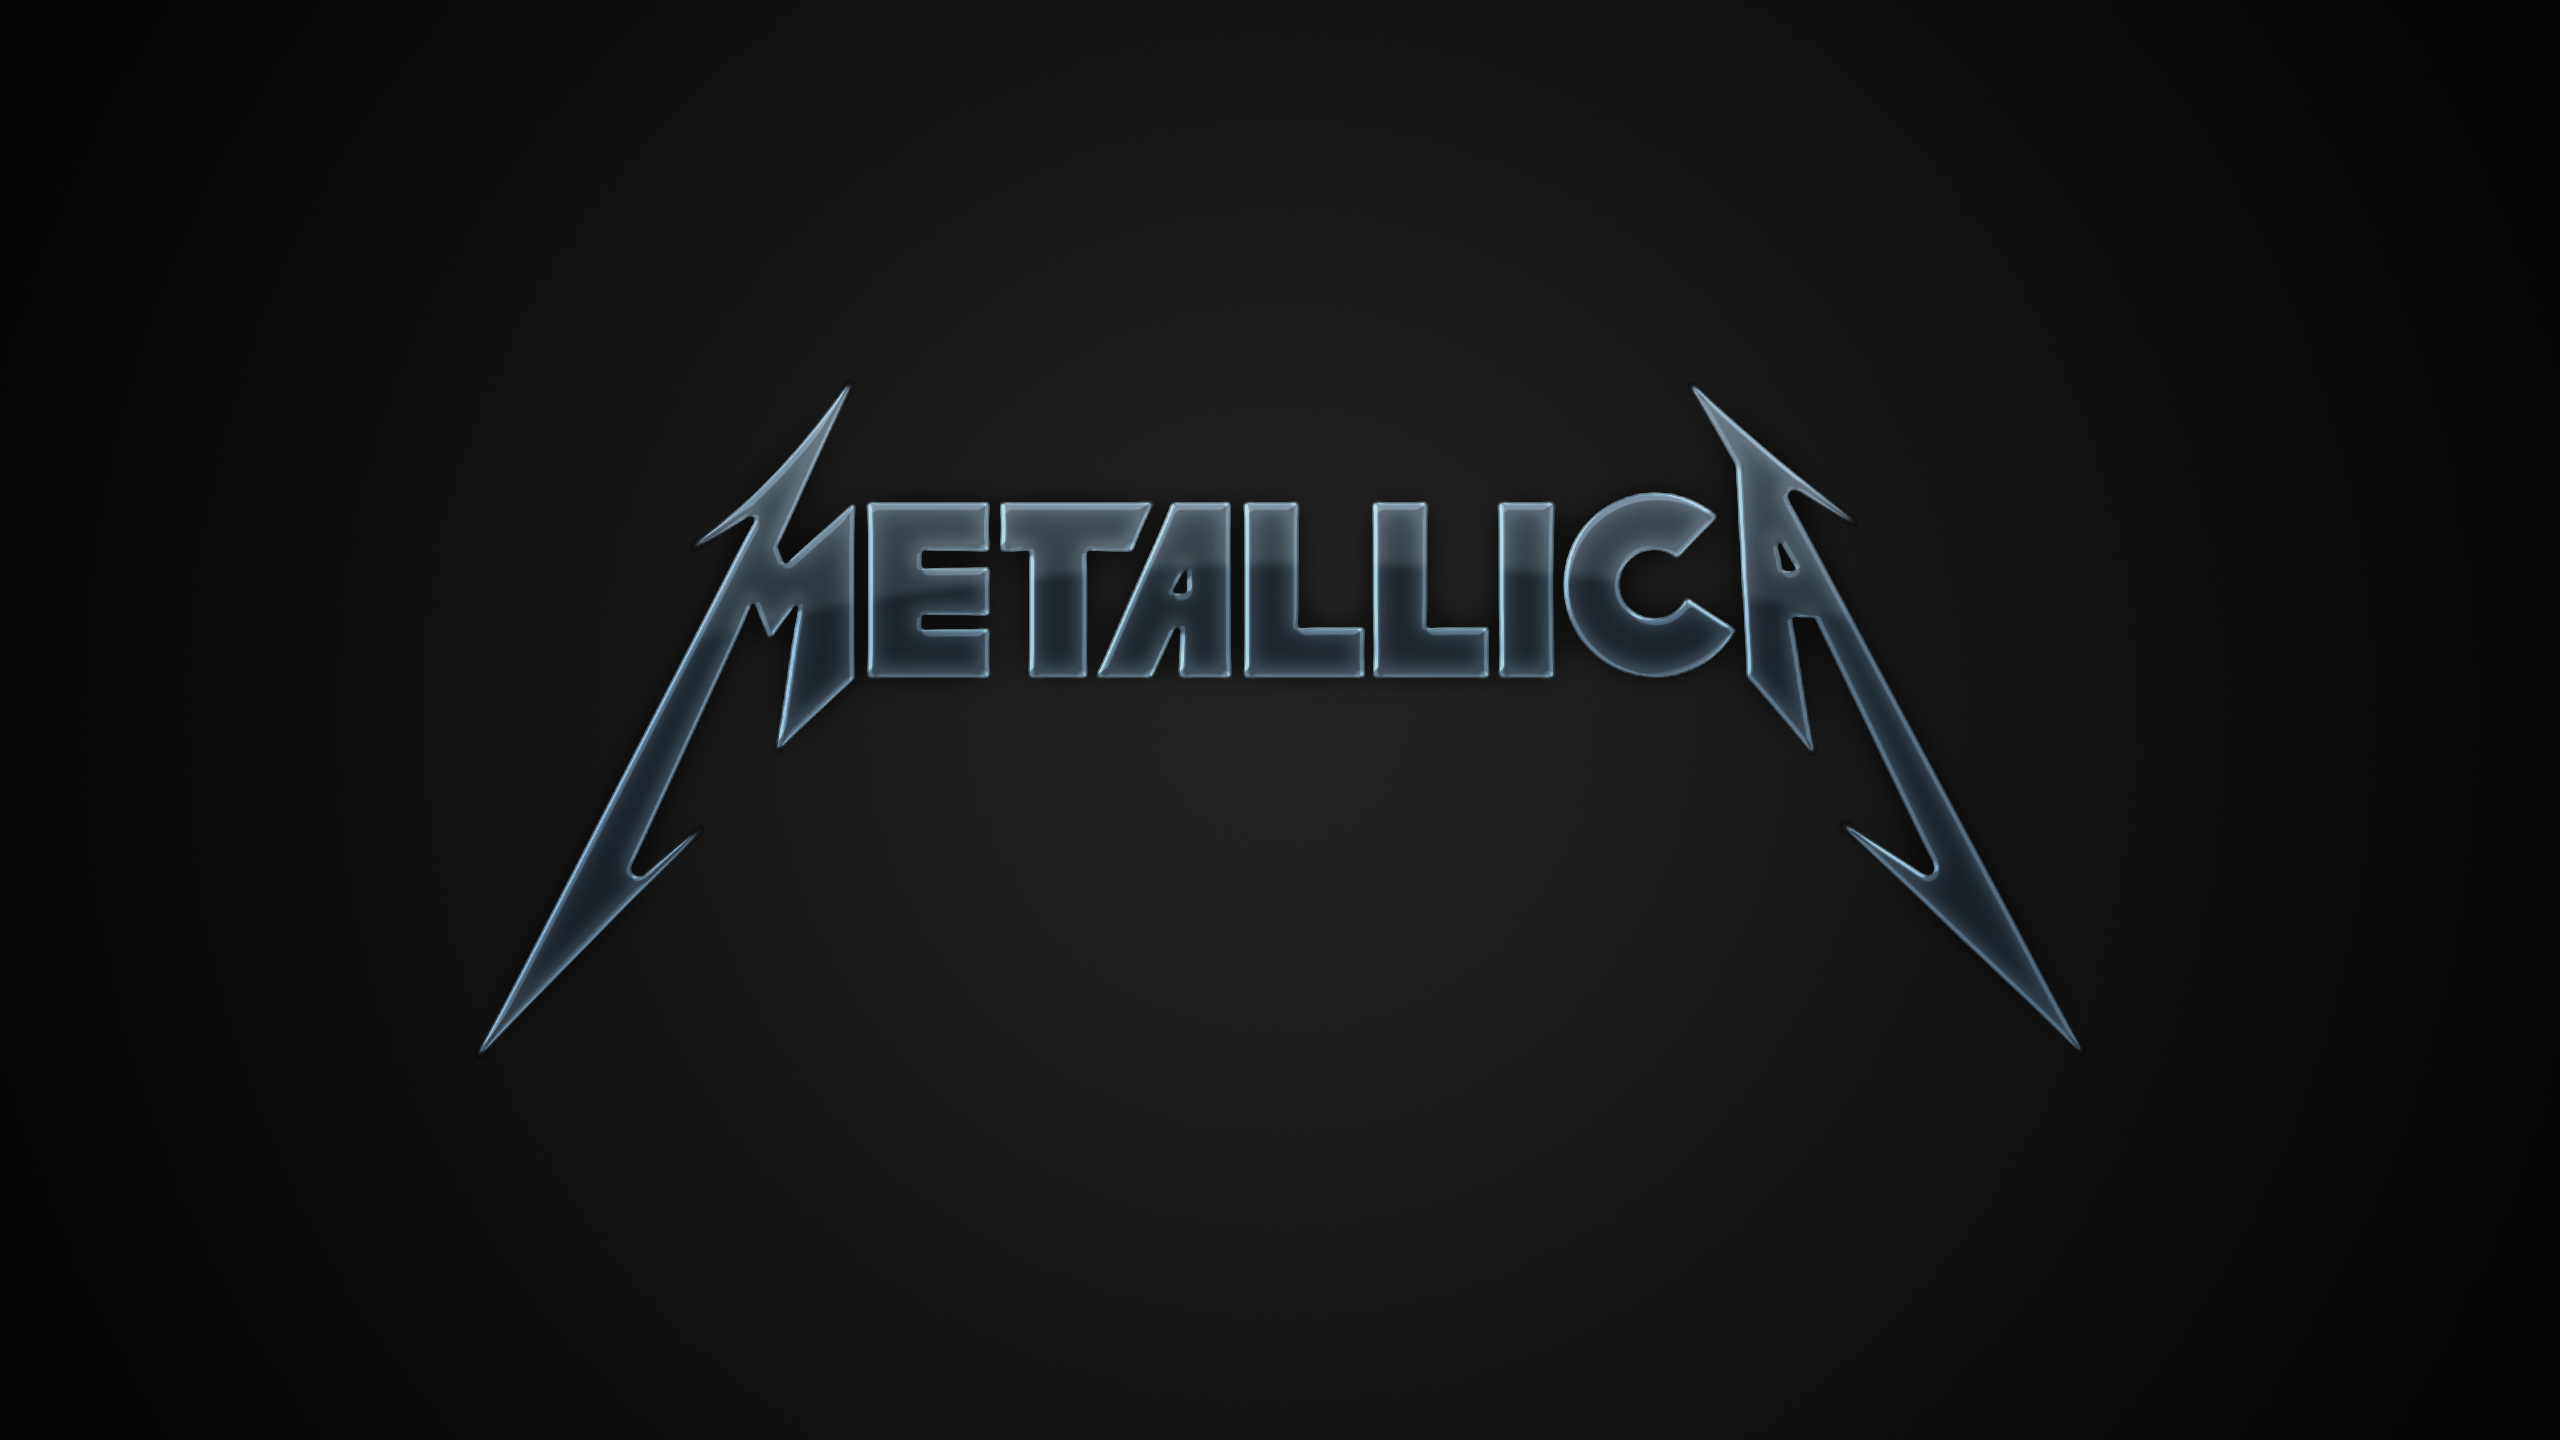 Metallica wallpaper by ~Kwinten on deviantART